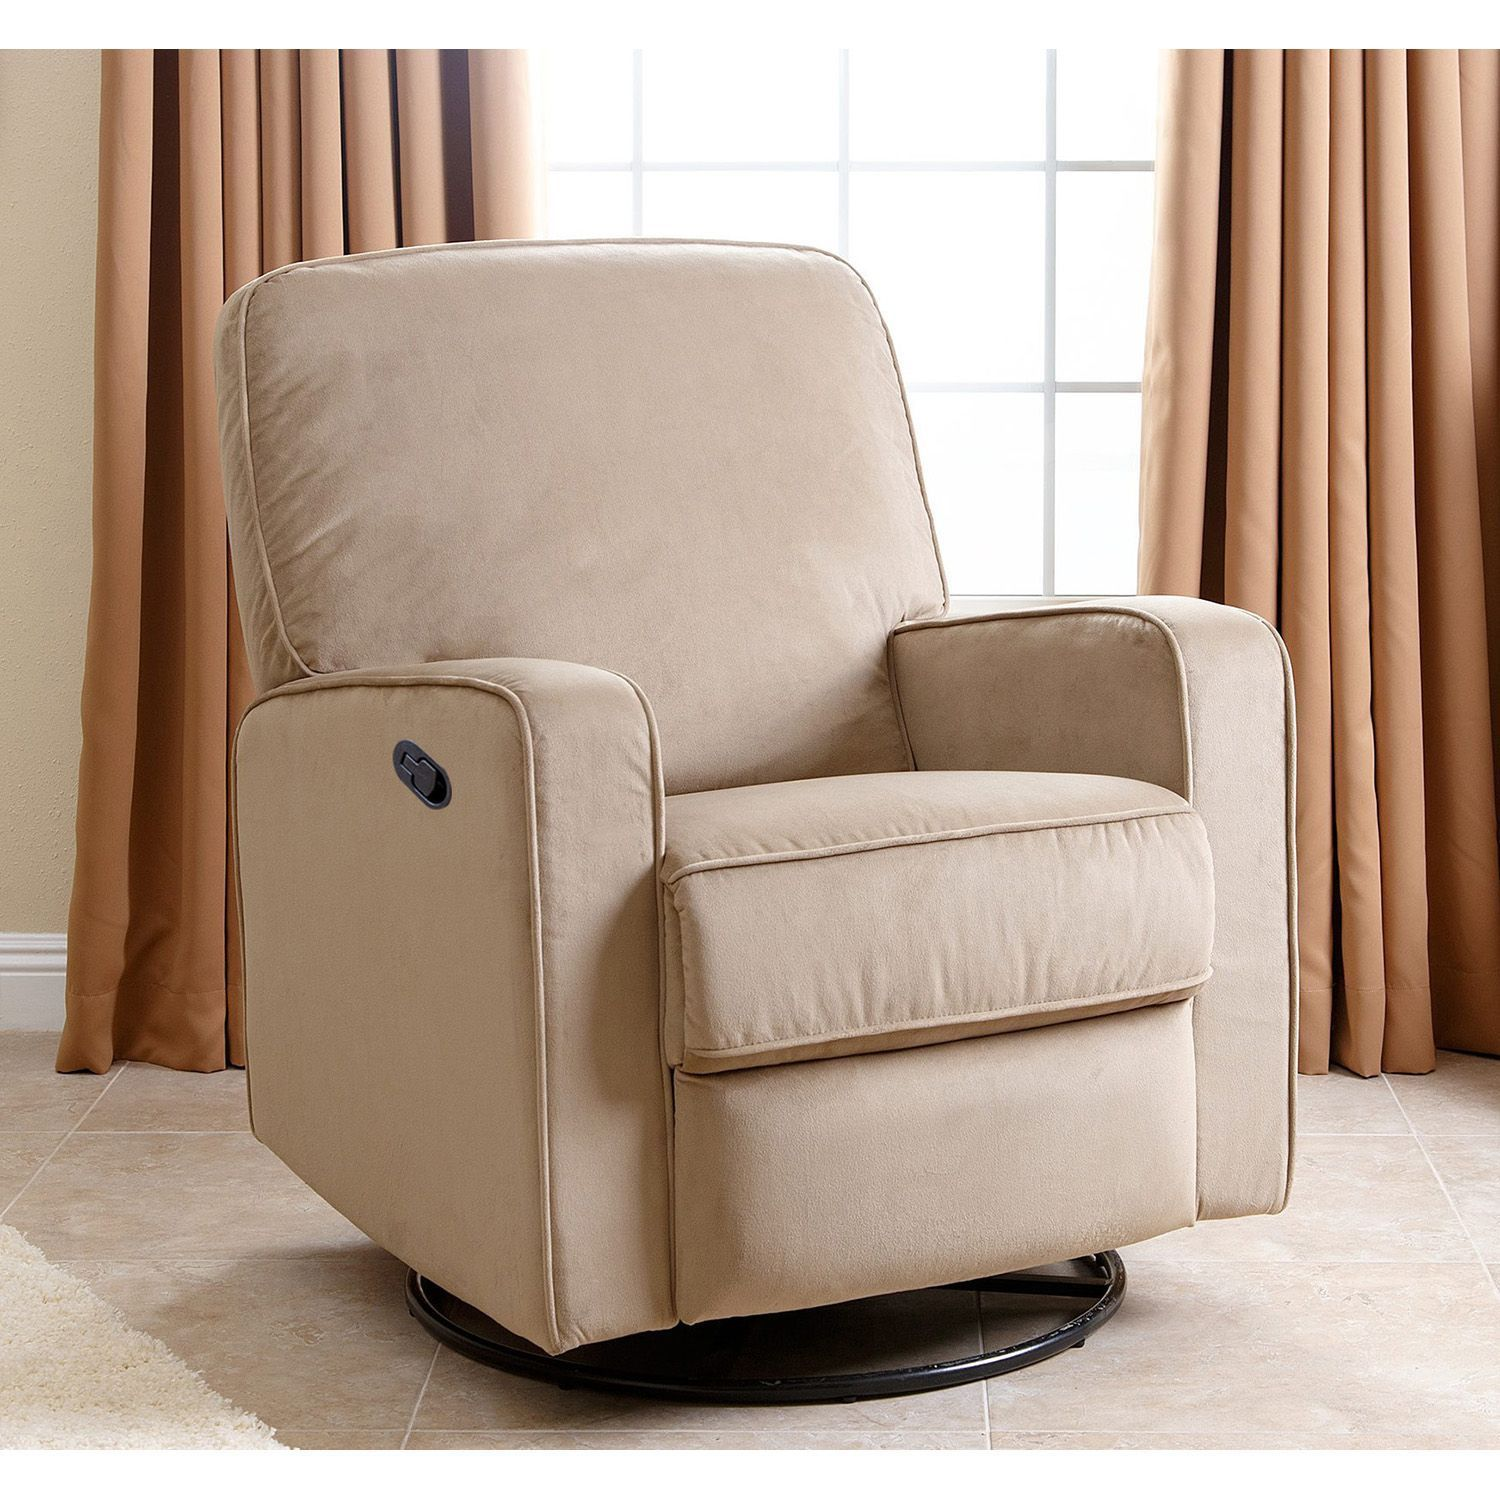 Swivel Glider Recliner Rocking Chair Nursery Upholstery Beige Fabric Living  Room